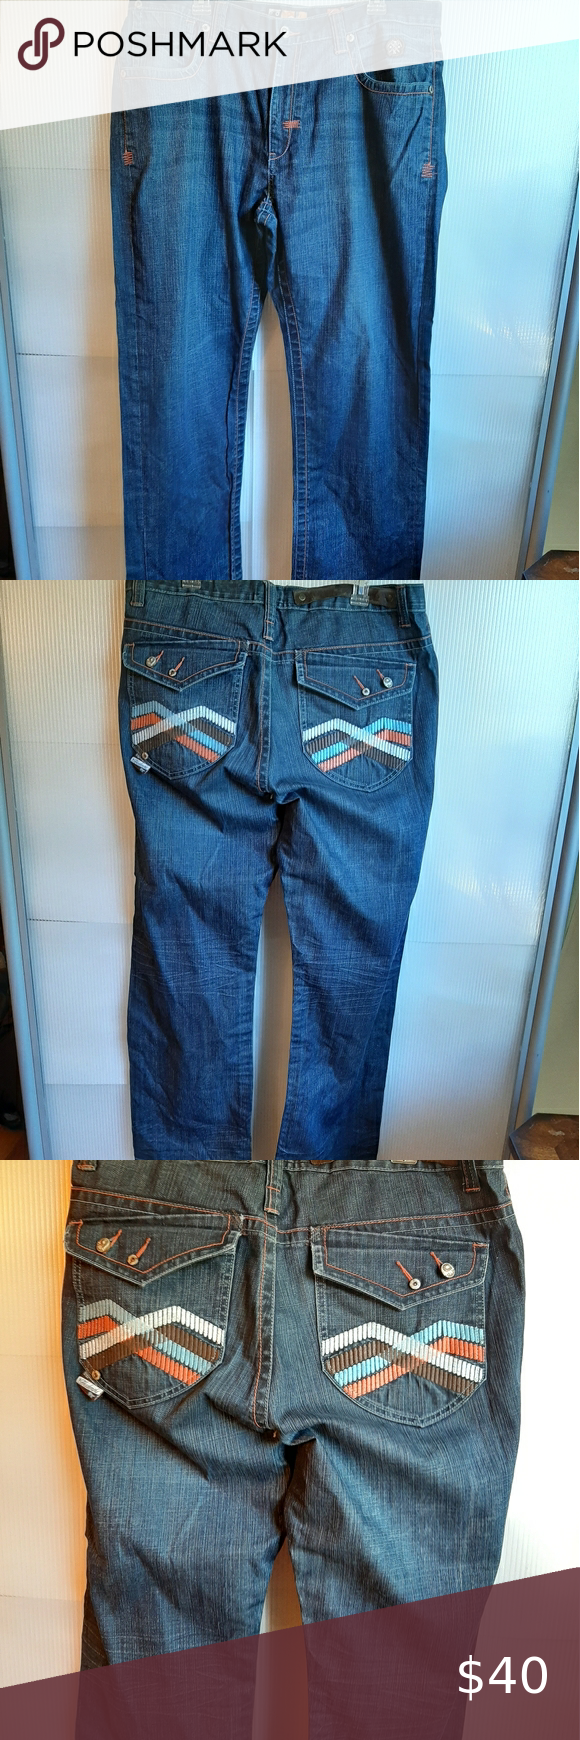 AKADEMIKS DISTRESSED MEN'S JEANS BLUE SIZE 38 AKADEMIKS DISTRESSED MEN'S JEANS SIZE 38 100%COTTON  PATERN ON POCKETS EXCELLENT CONDITION AKADEMIKS Jeans Relaxed